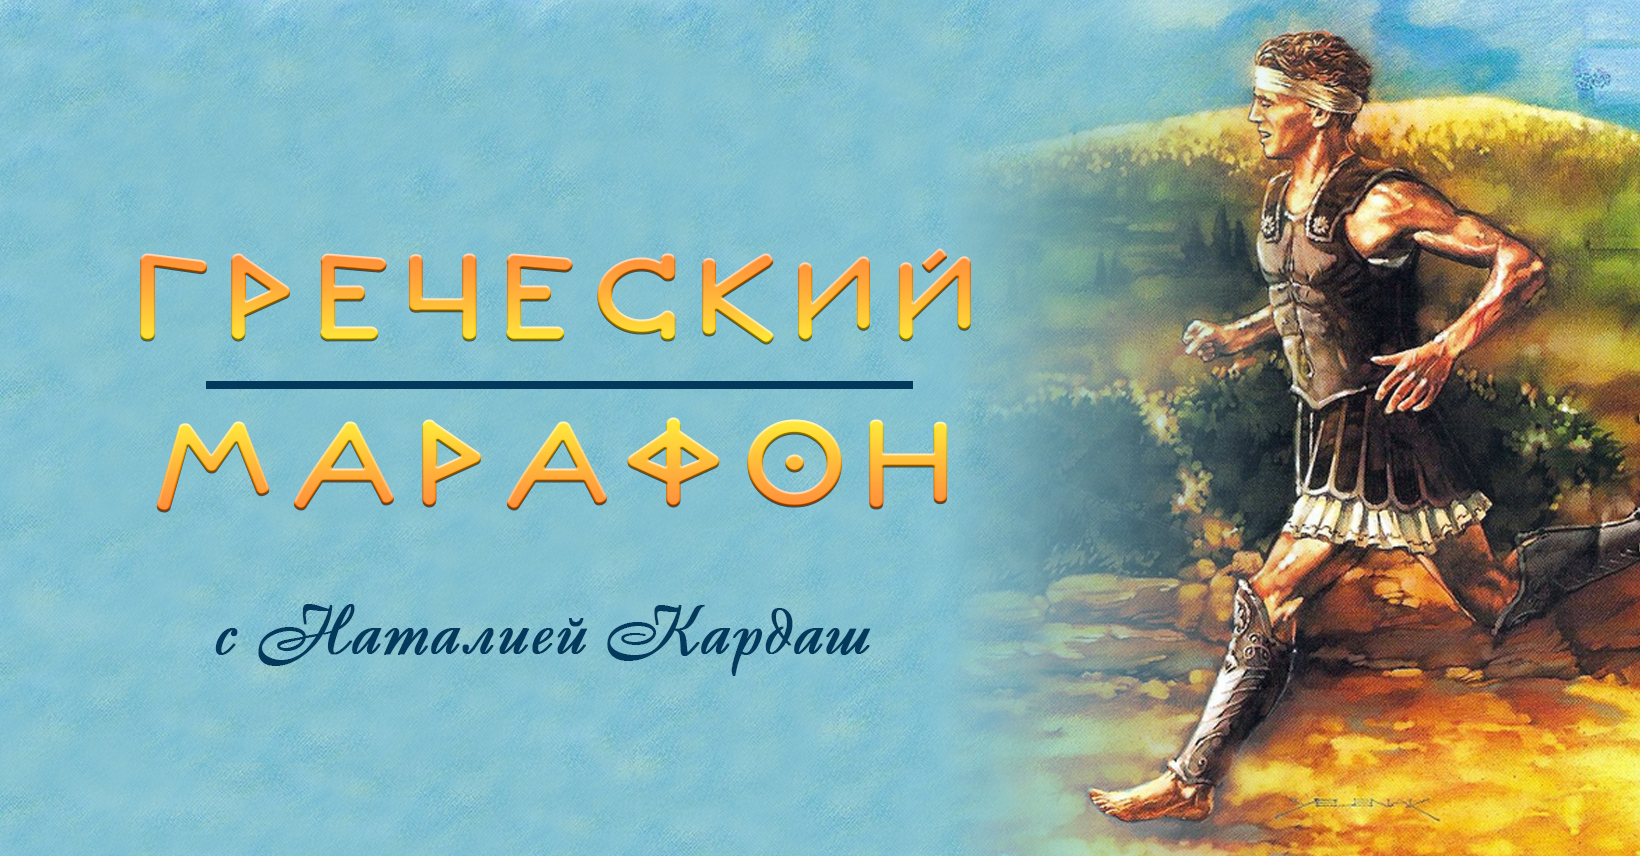 greek marathon group cover